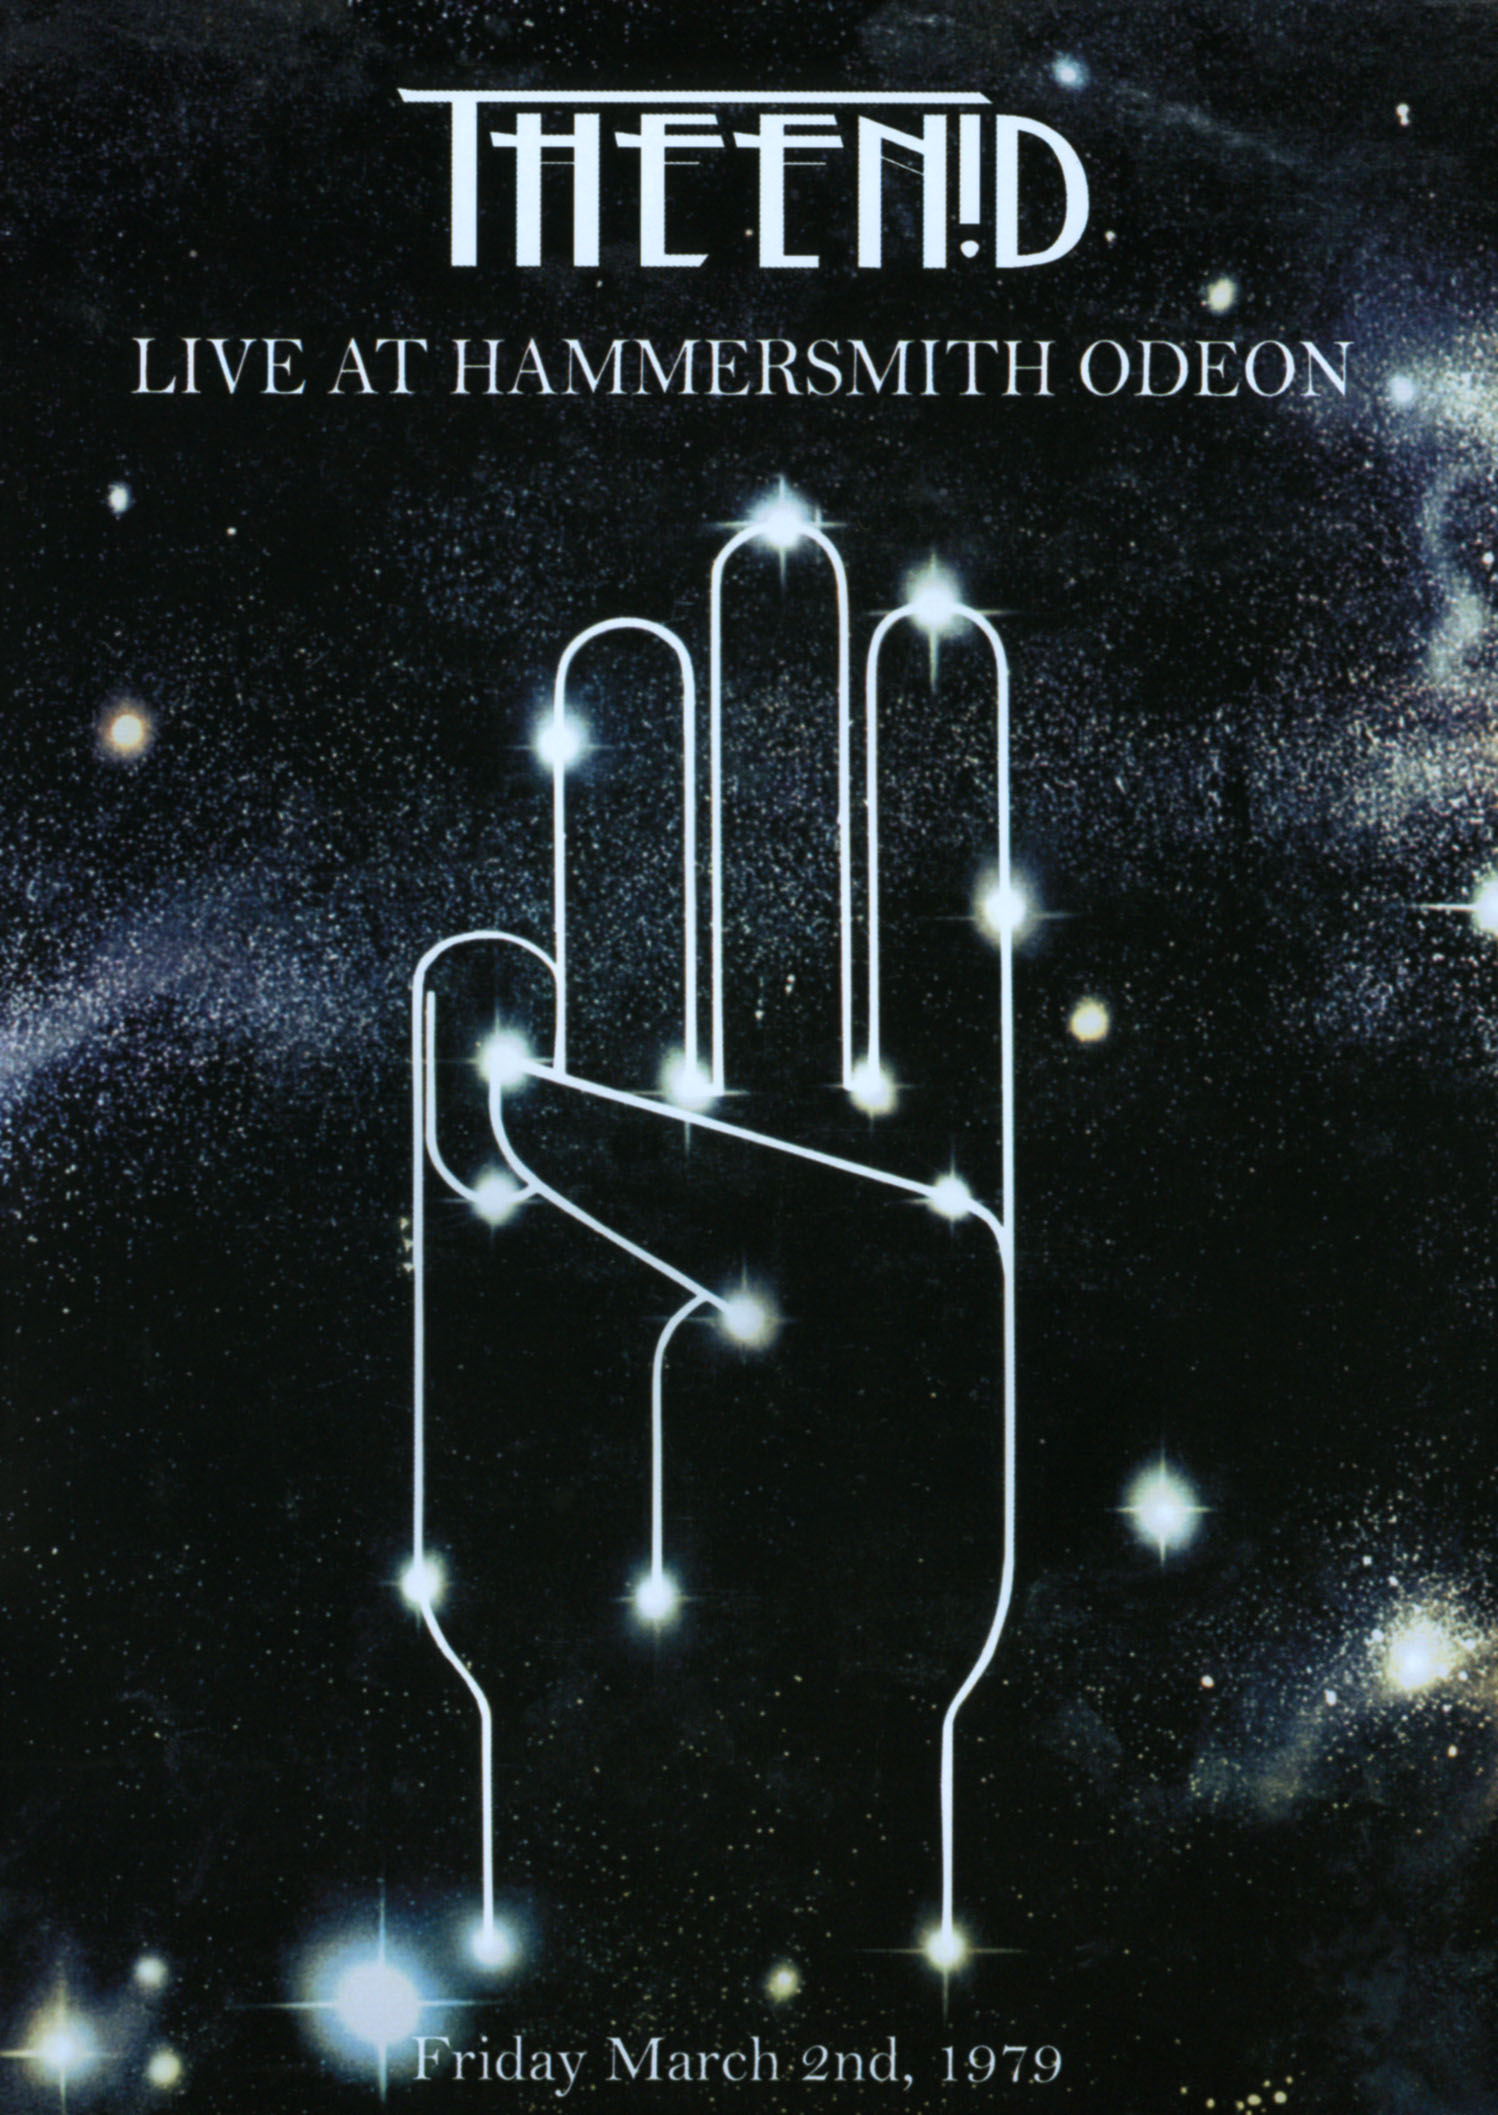 Enid: Live at Hammersmith Odeon